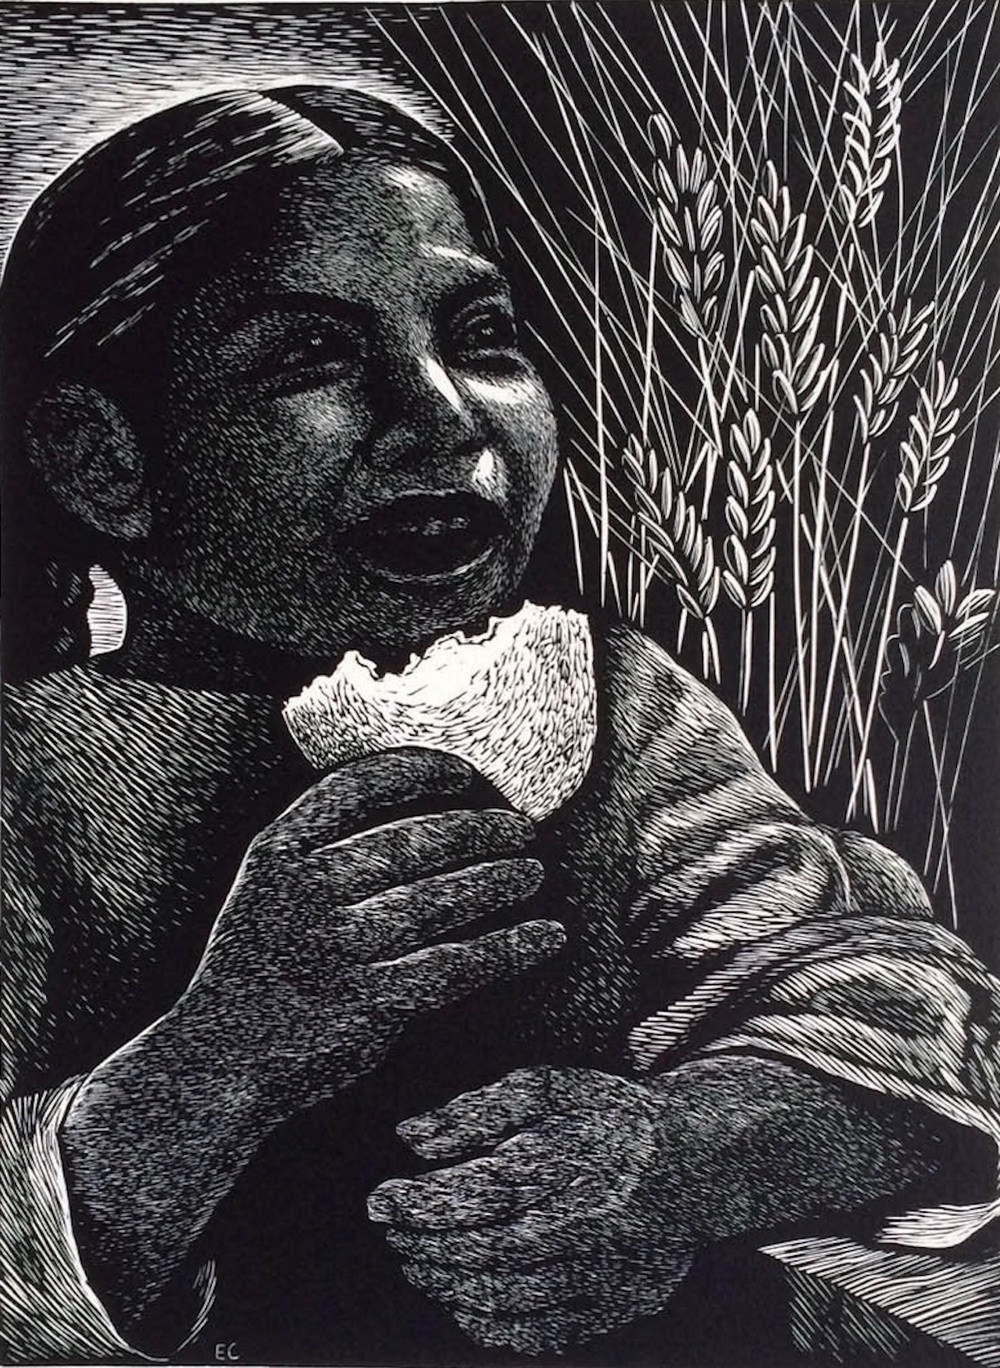 Elizabeth Catlett's Bread for All Art © Catlett Mora Family Trust/Licensed by VAGA, New York, NY